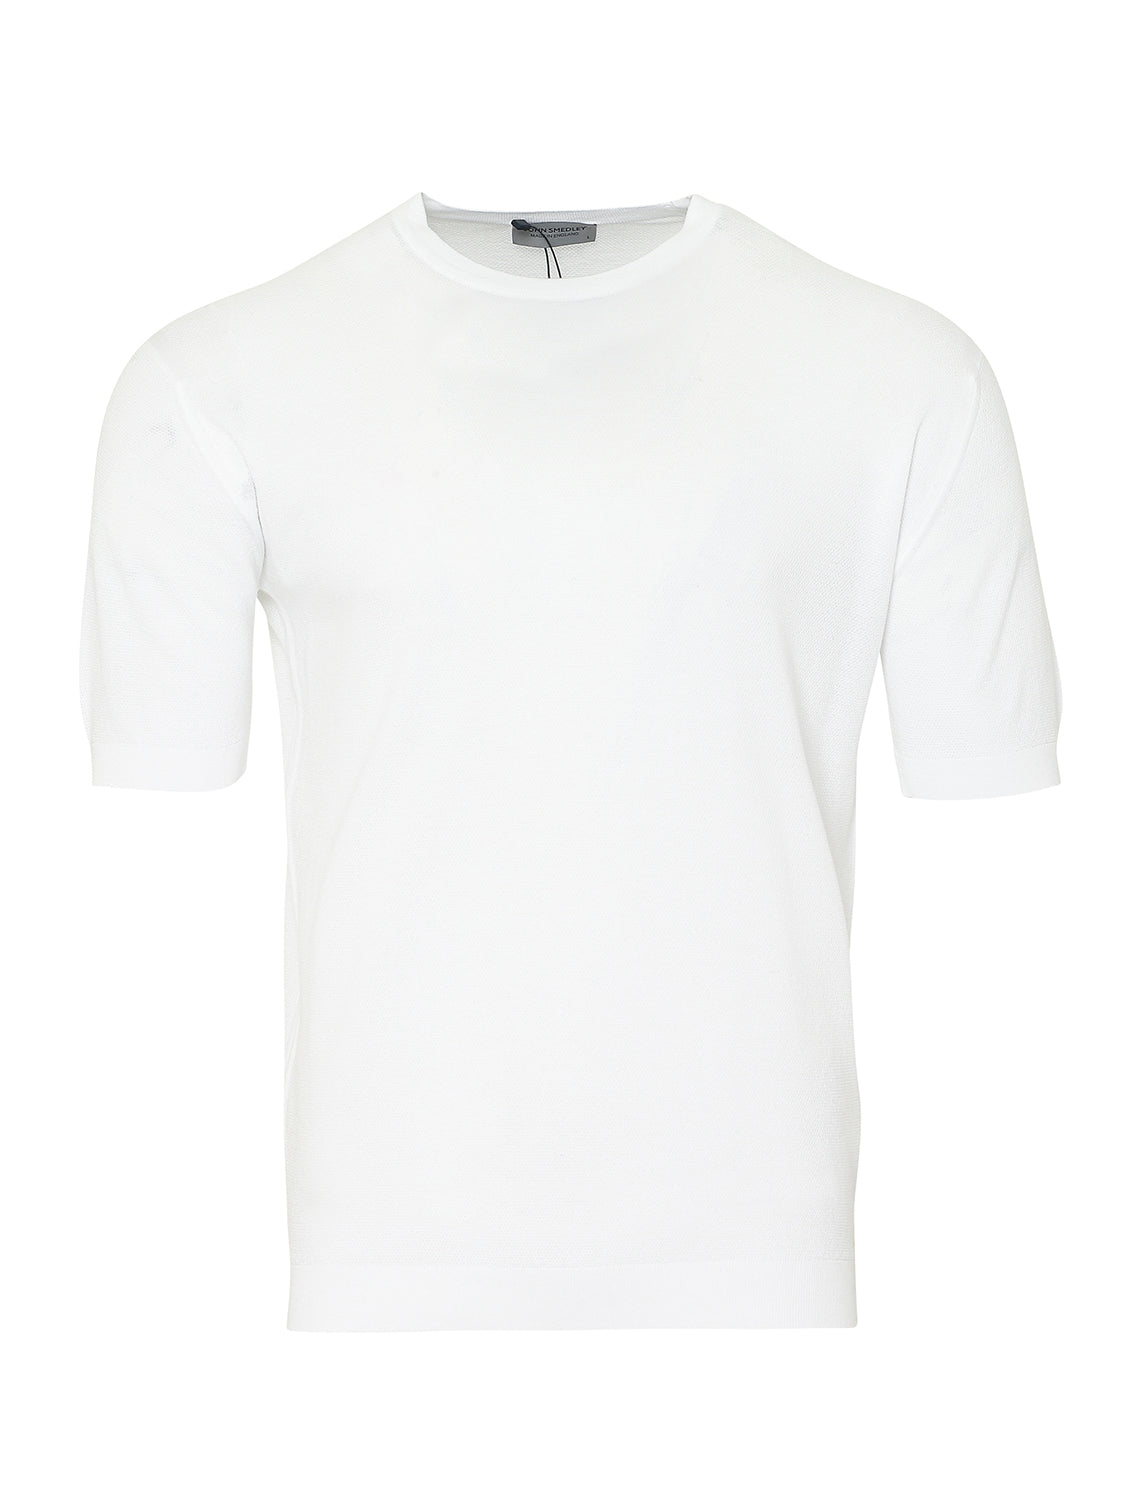 John Smedley Park Short Sleeve T-Shirt (White) - Union 22